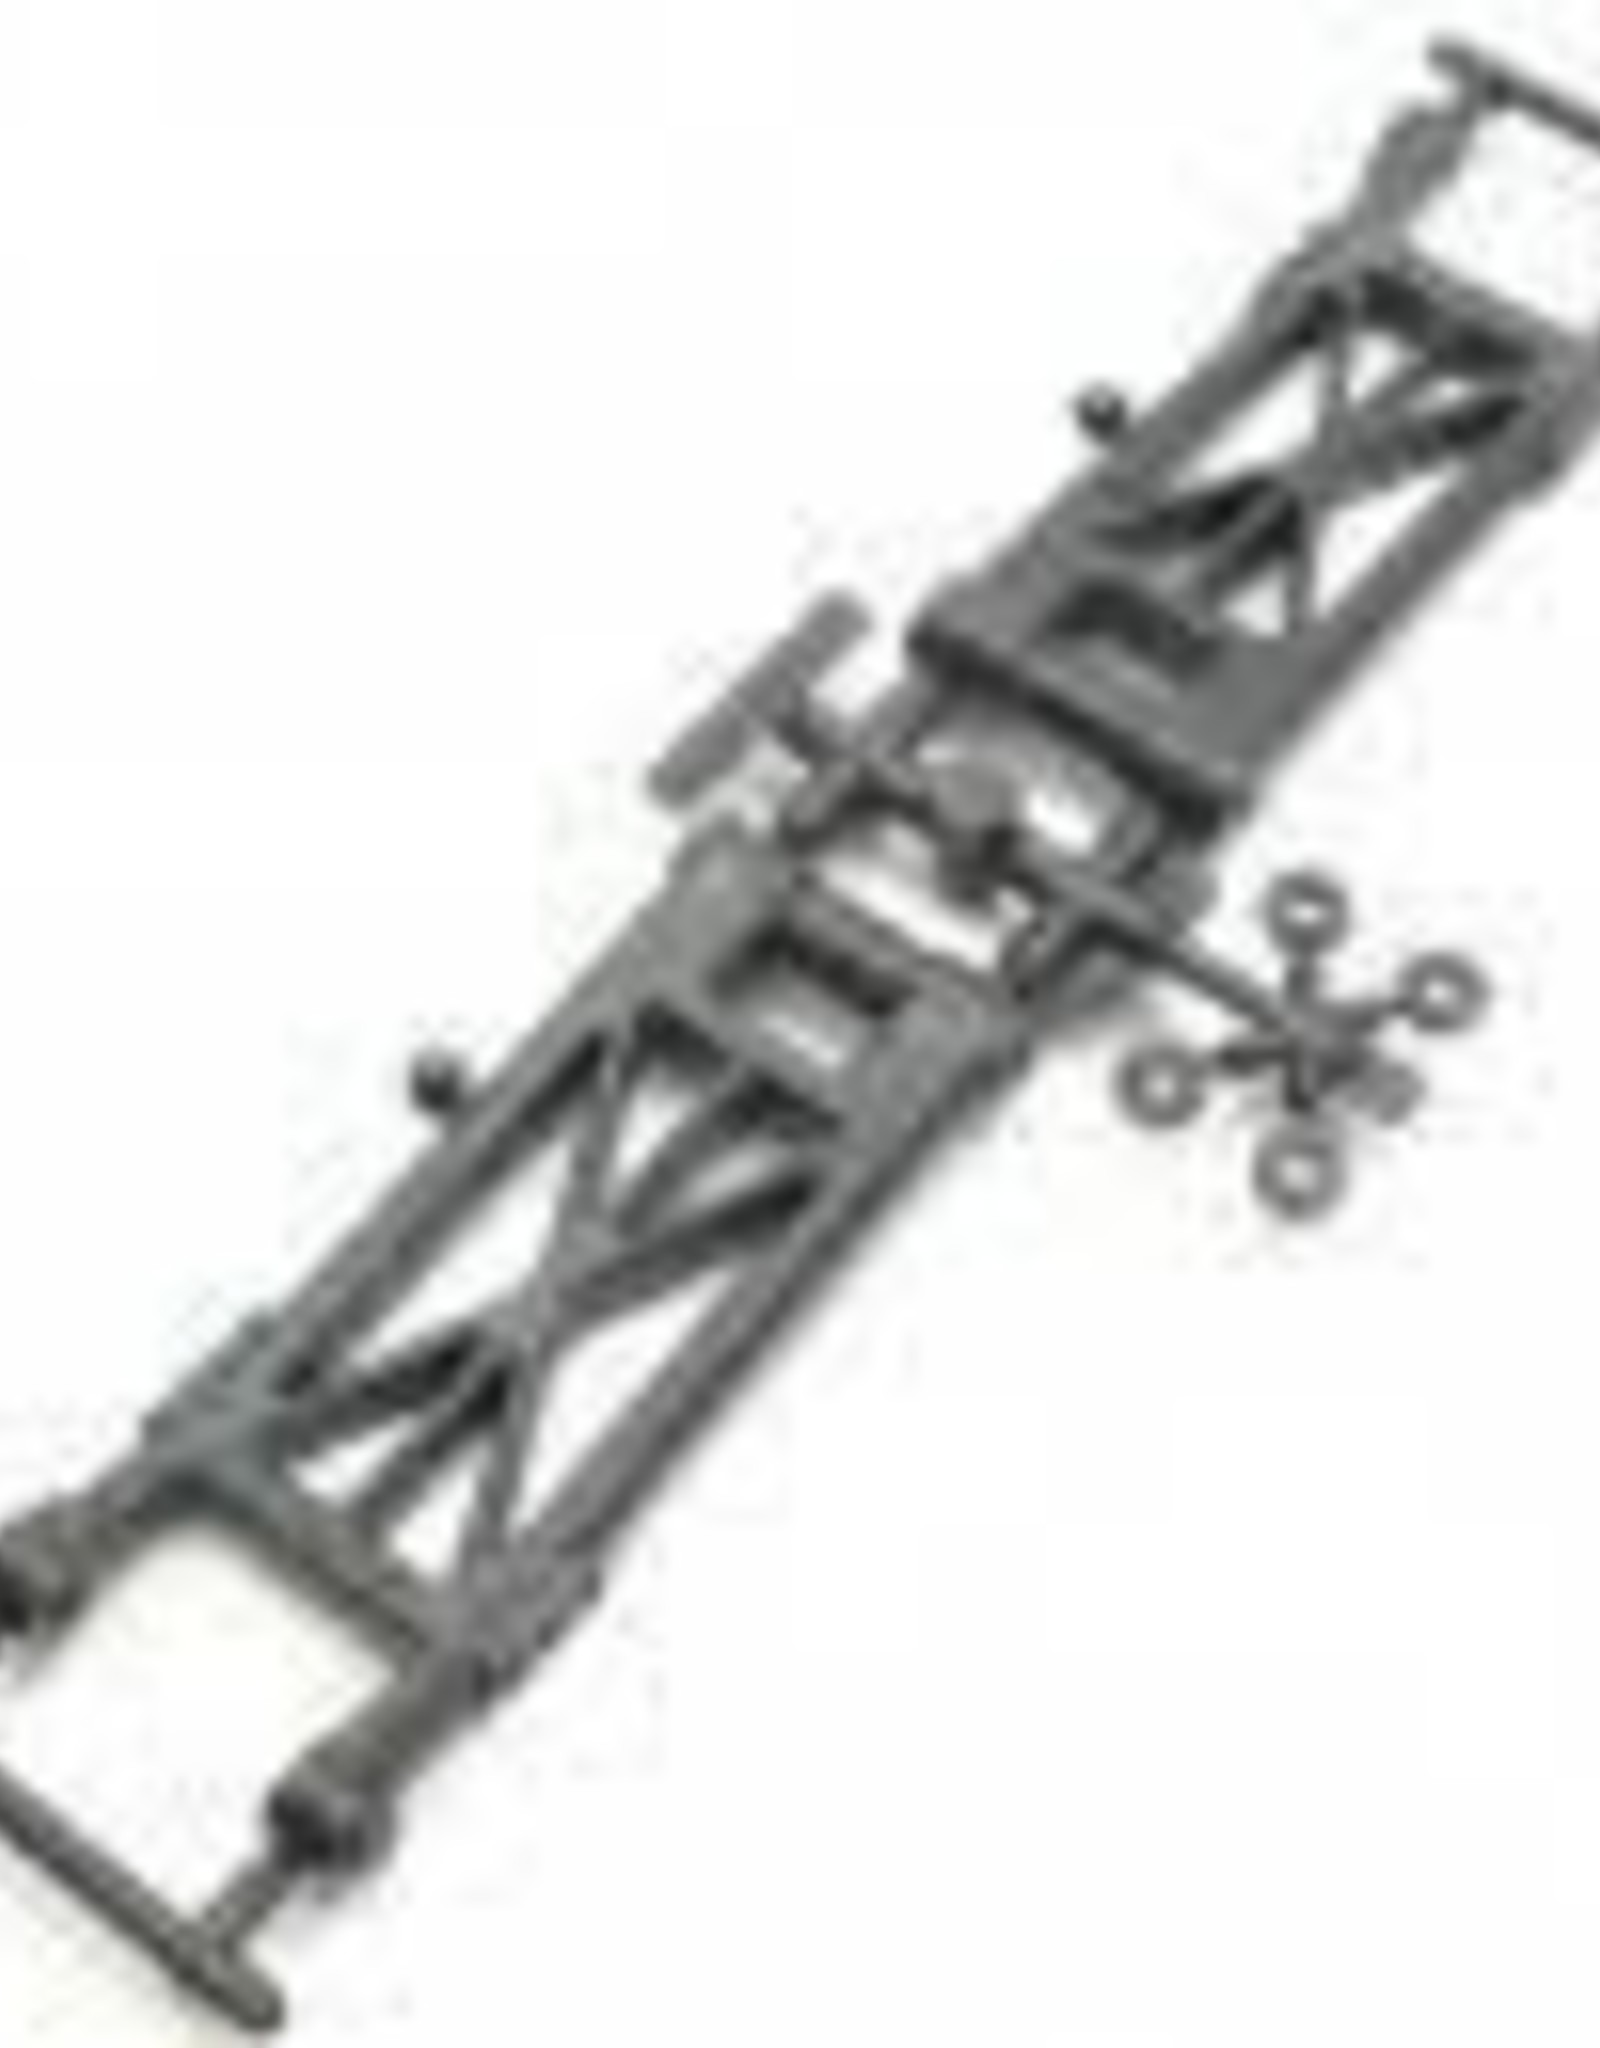 Sworkz S12-2 RR Lower Arm Set in Pro-Composite Material (Hard)